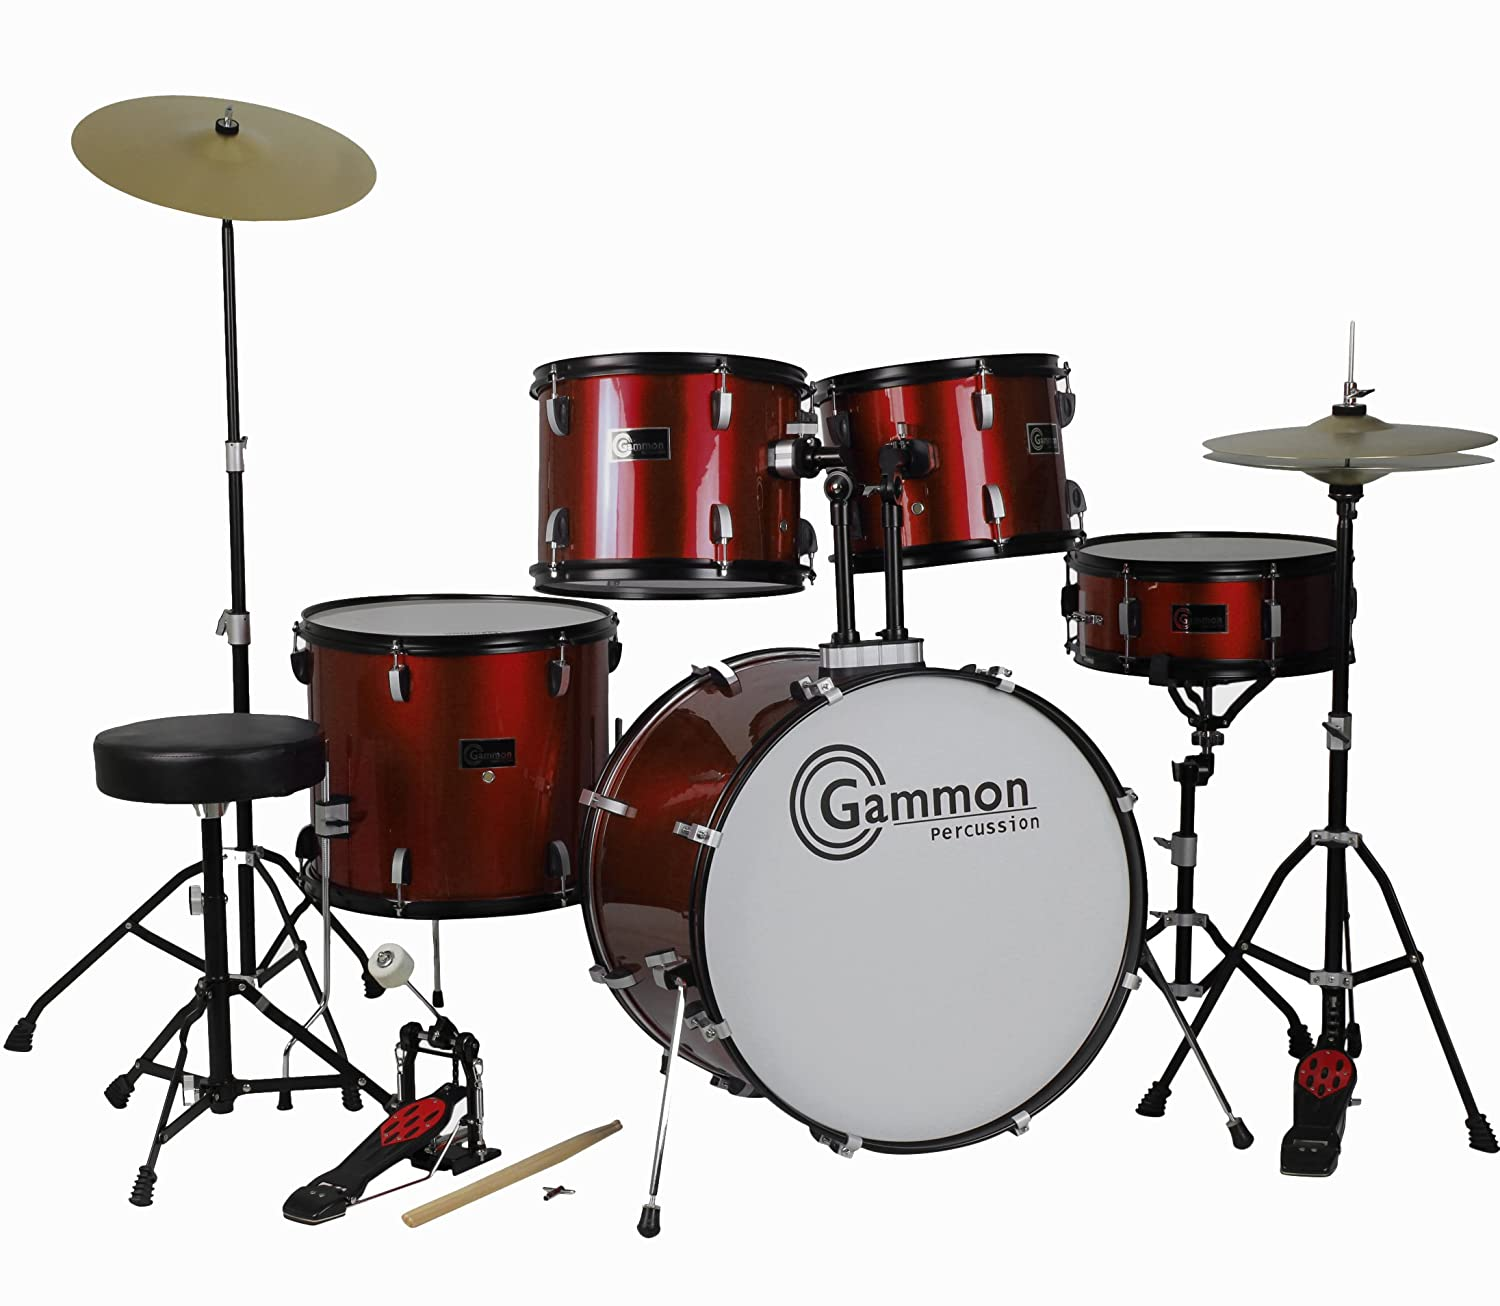 Drum Set Wine Red 5-Piece Complete Full Size with Cymbals Stands Stool Sticks Gammon Percussion J7WINERED